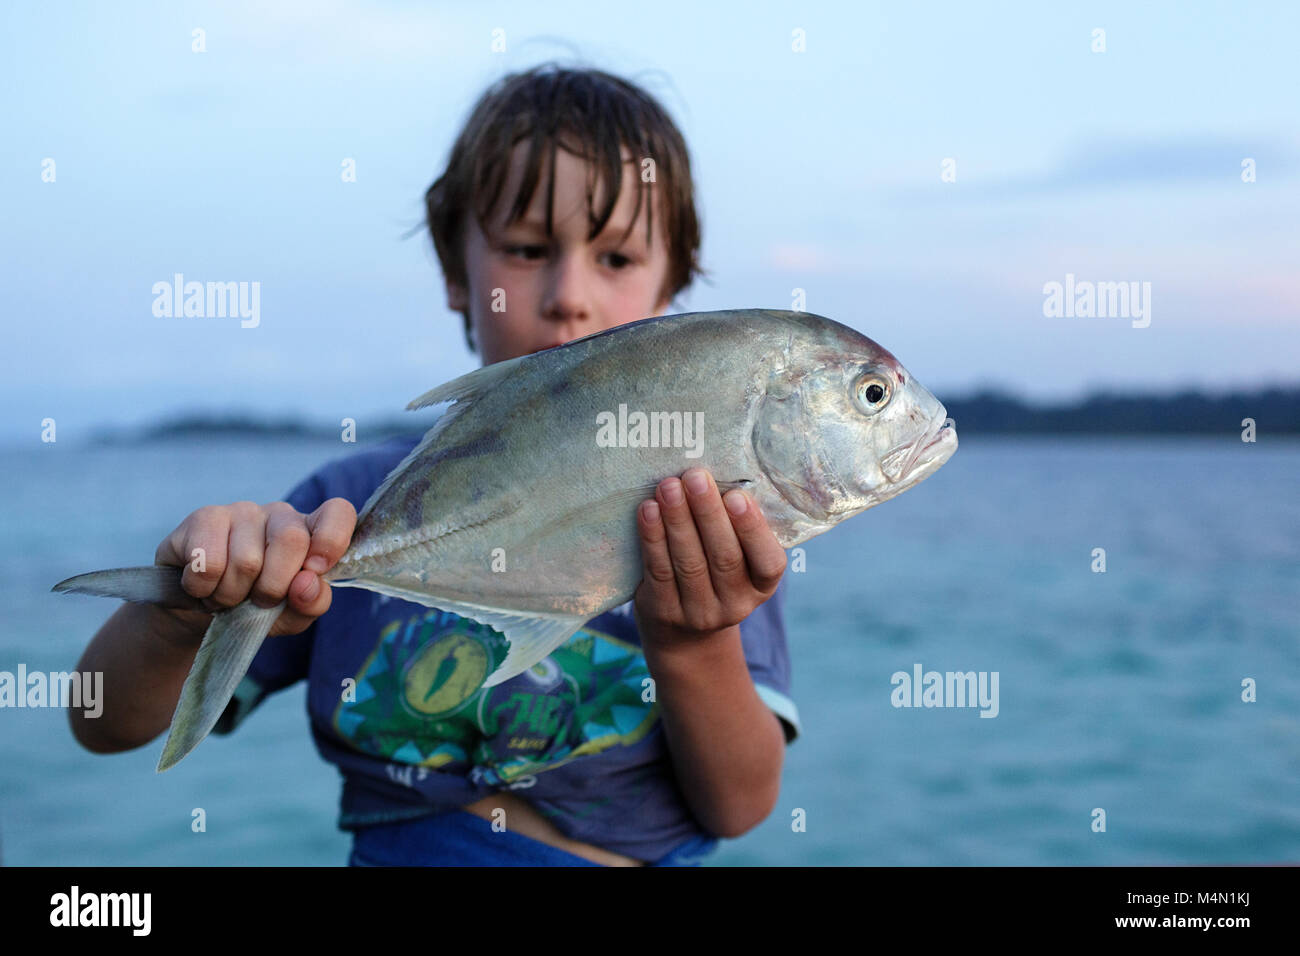 Happy face cute boy showing big fish he caught, portrait of preteen blonde child, summer travel and beach vacation - Stock Image